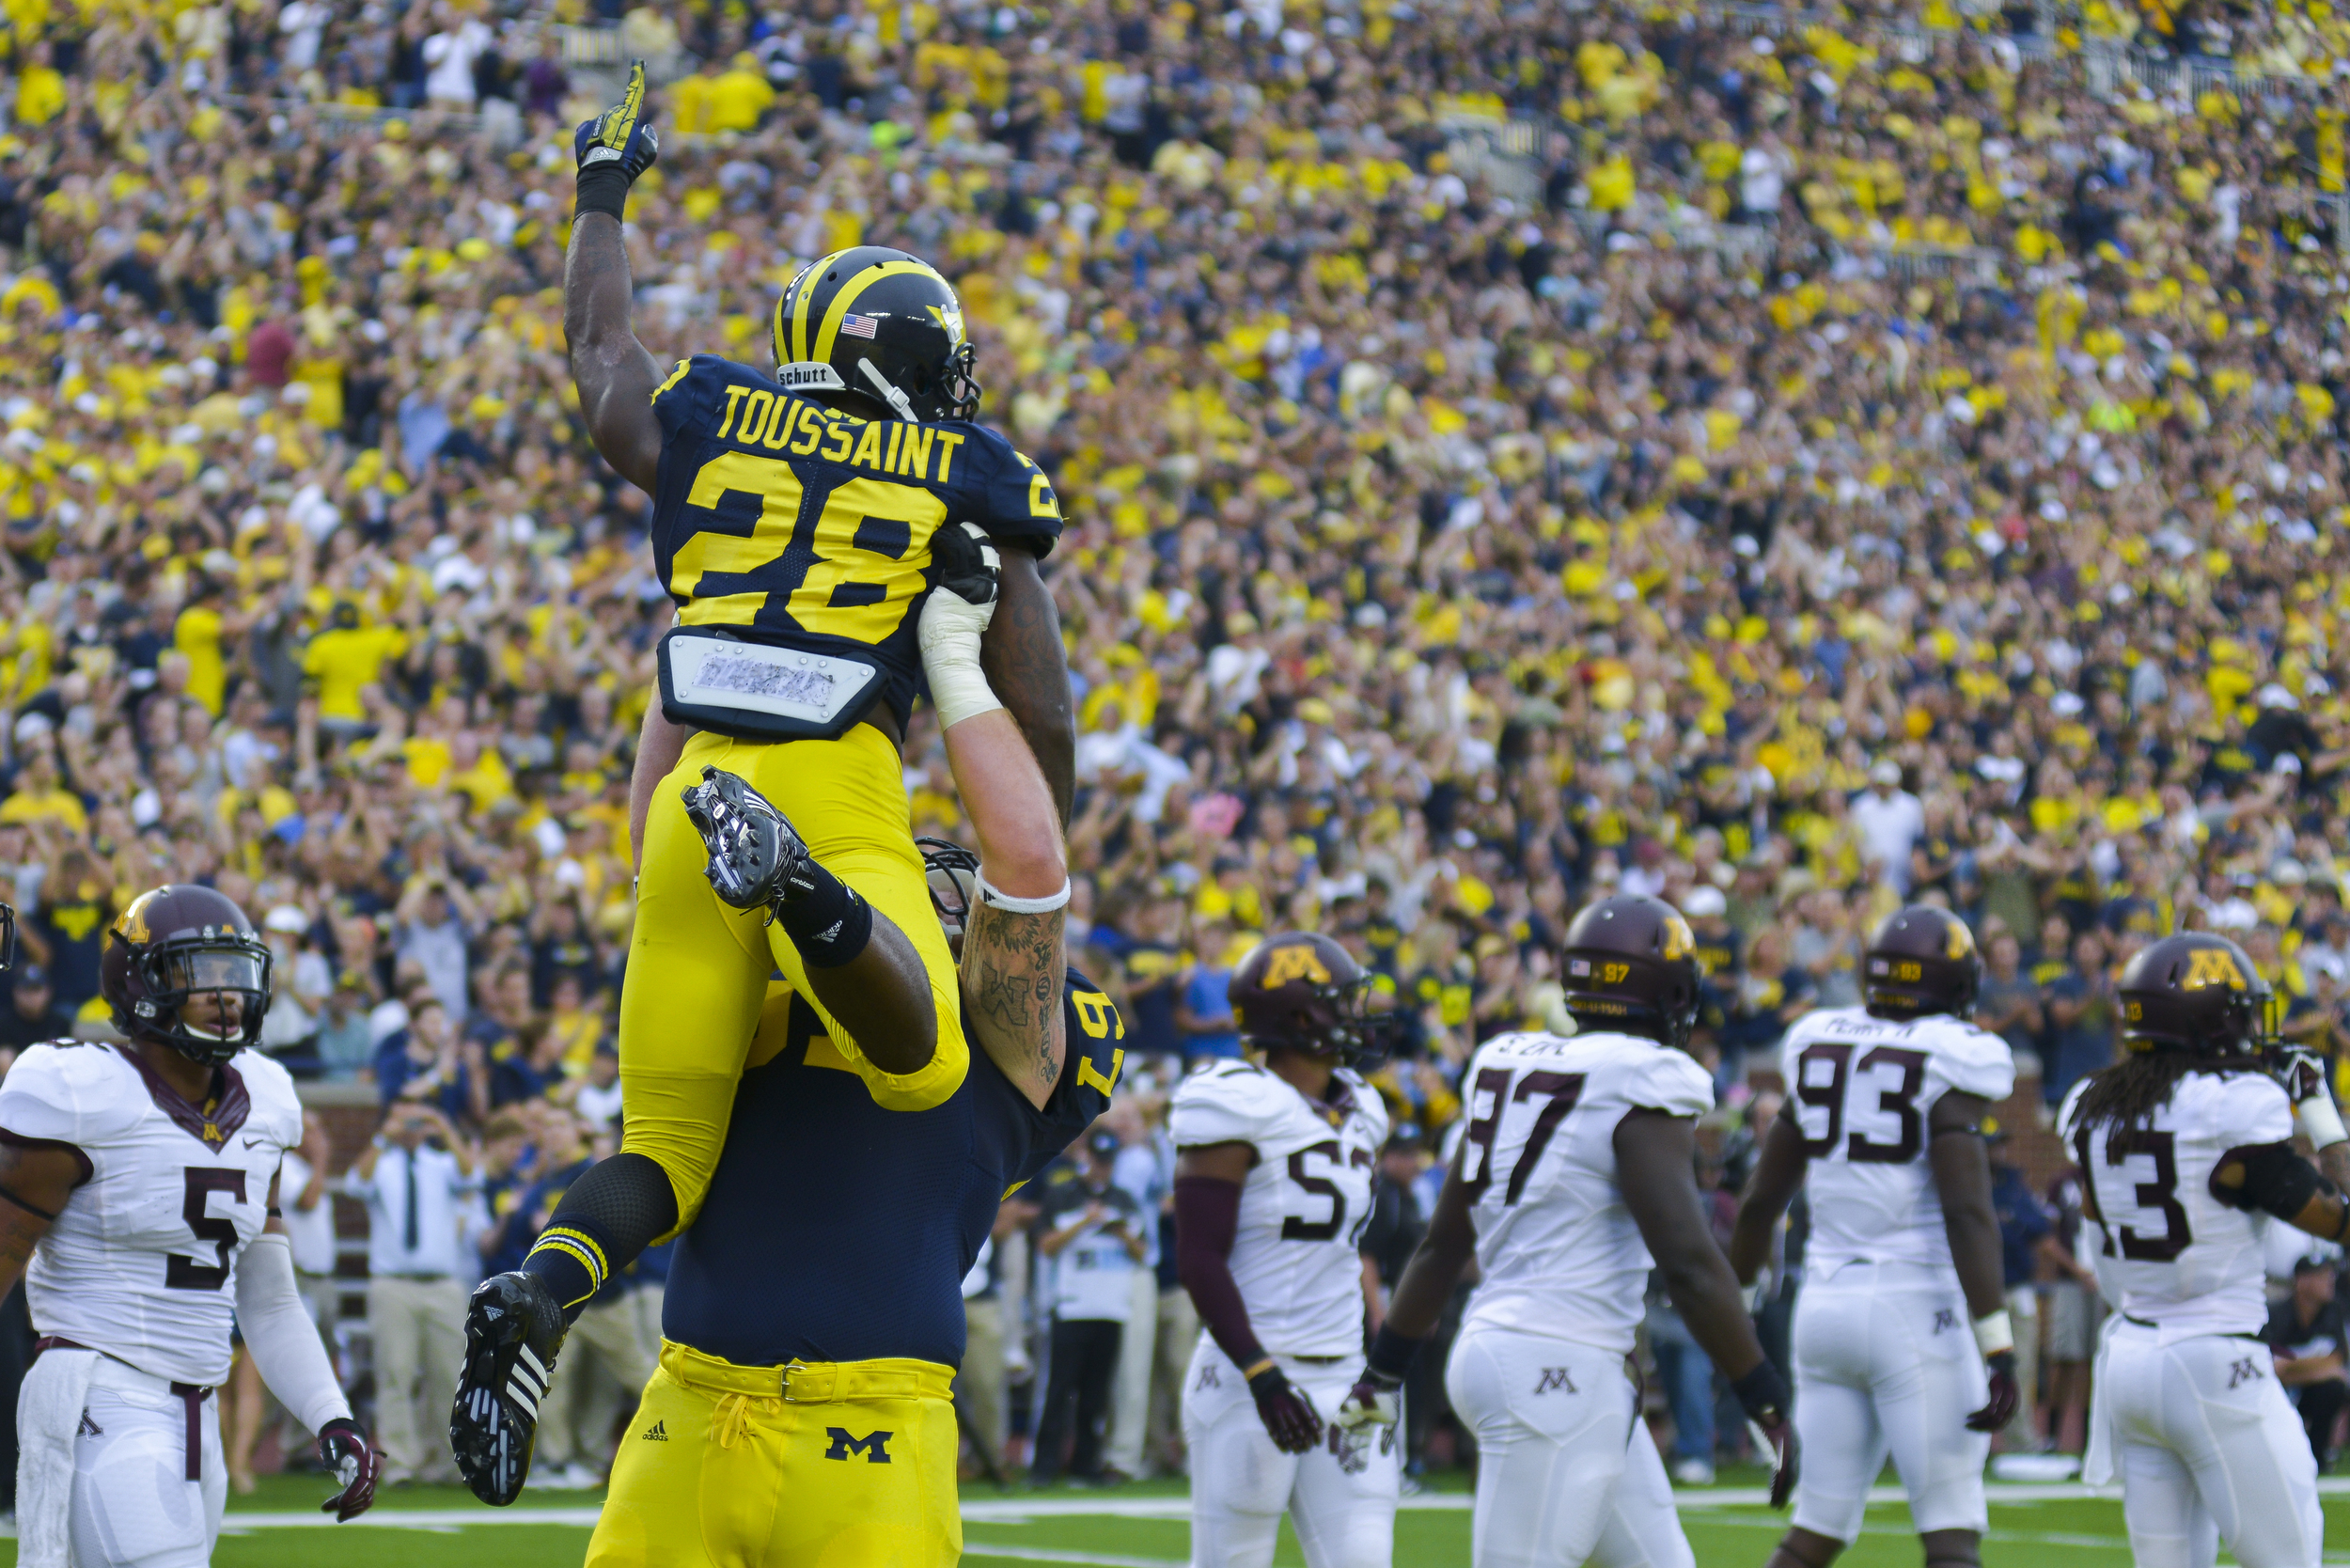 Michigan RB #28, Fitz Toussaint celebrates with teammateOL #67 Kyle Kalis after scoring a touchdown against Minnesota. Toussaint ran for 78 yards and two touchdowns, the Wolverines went on to win 42-13.